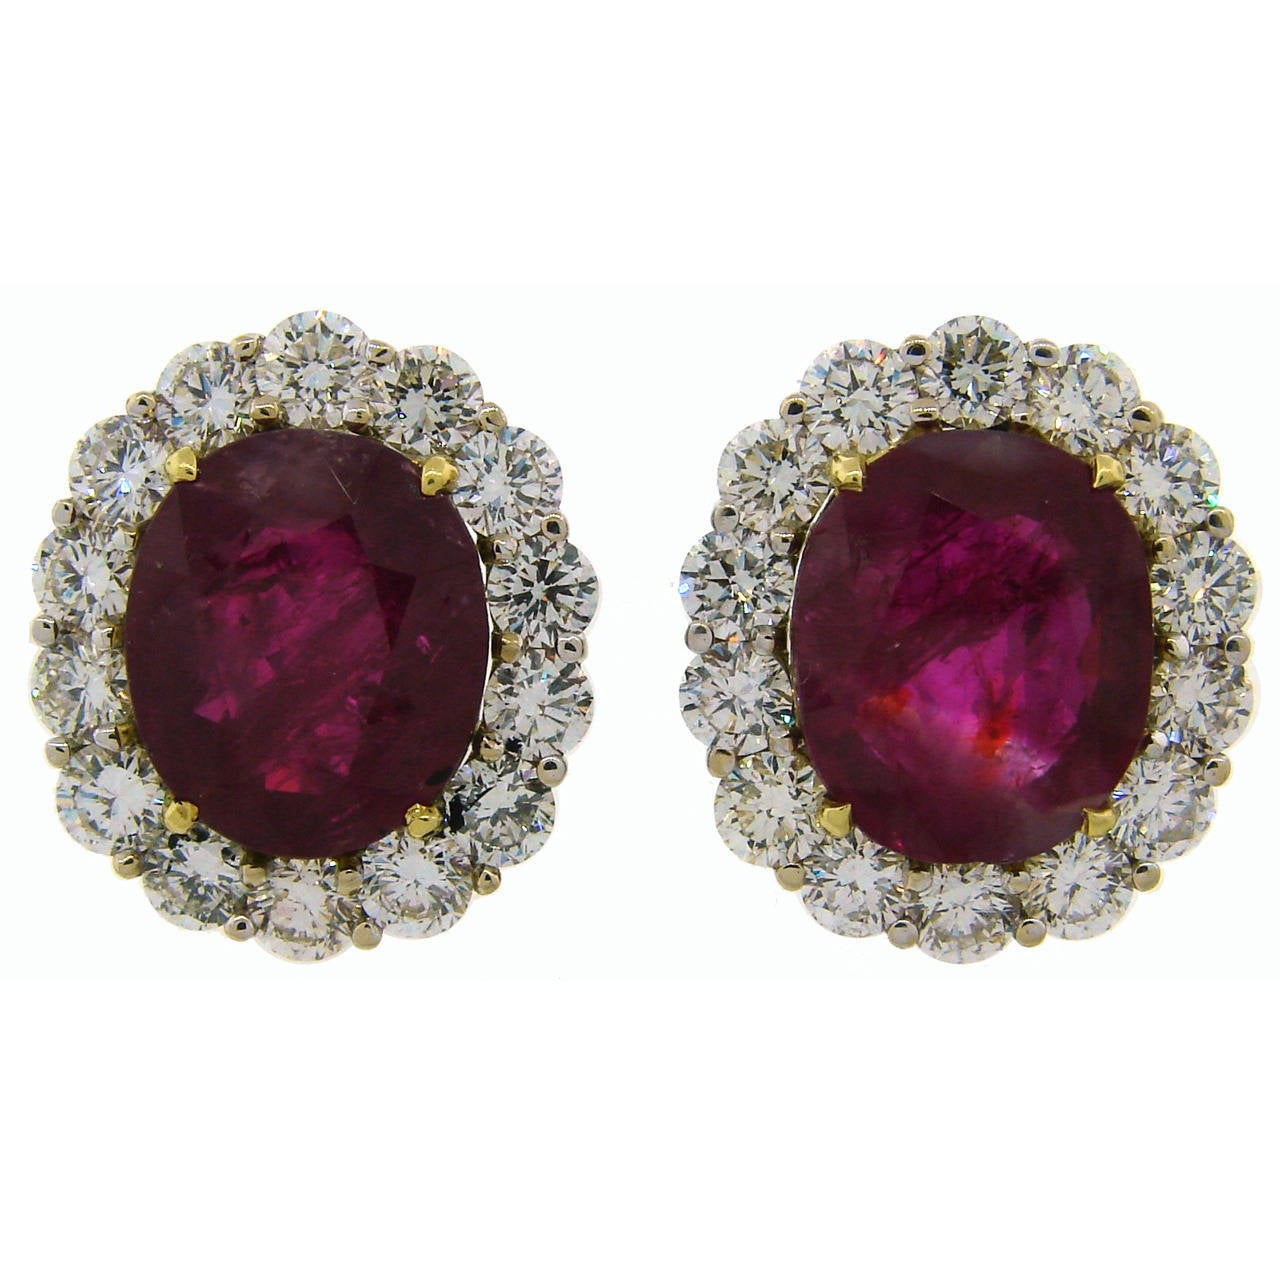 9.49 Carat No Heat Burmese Ruby Diamond Gold Earrings